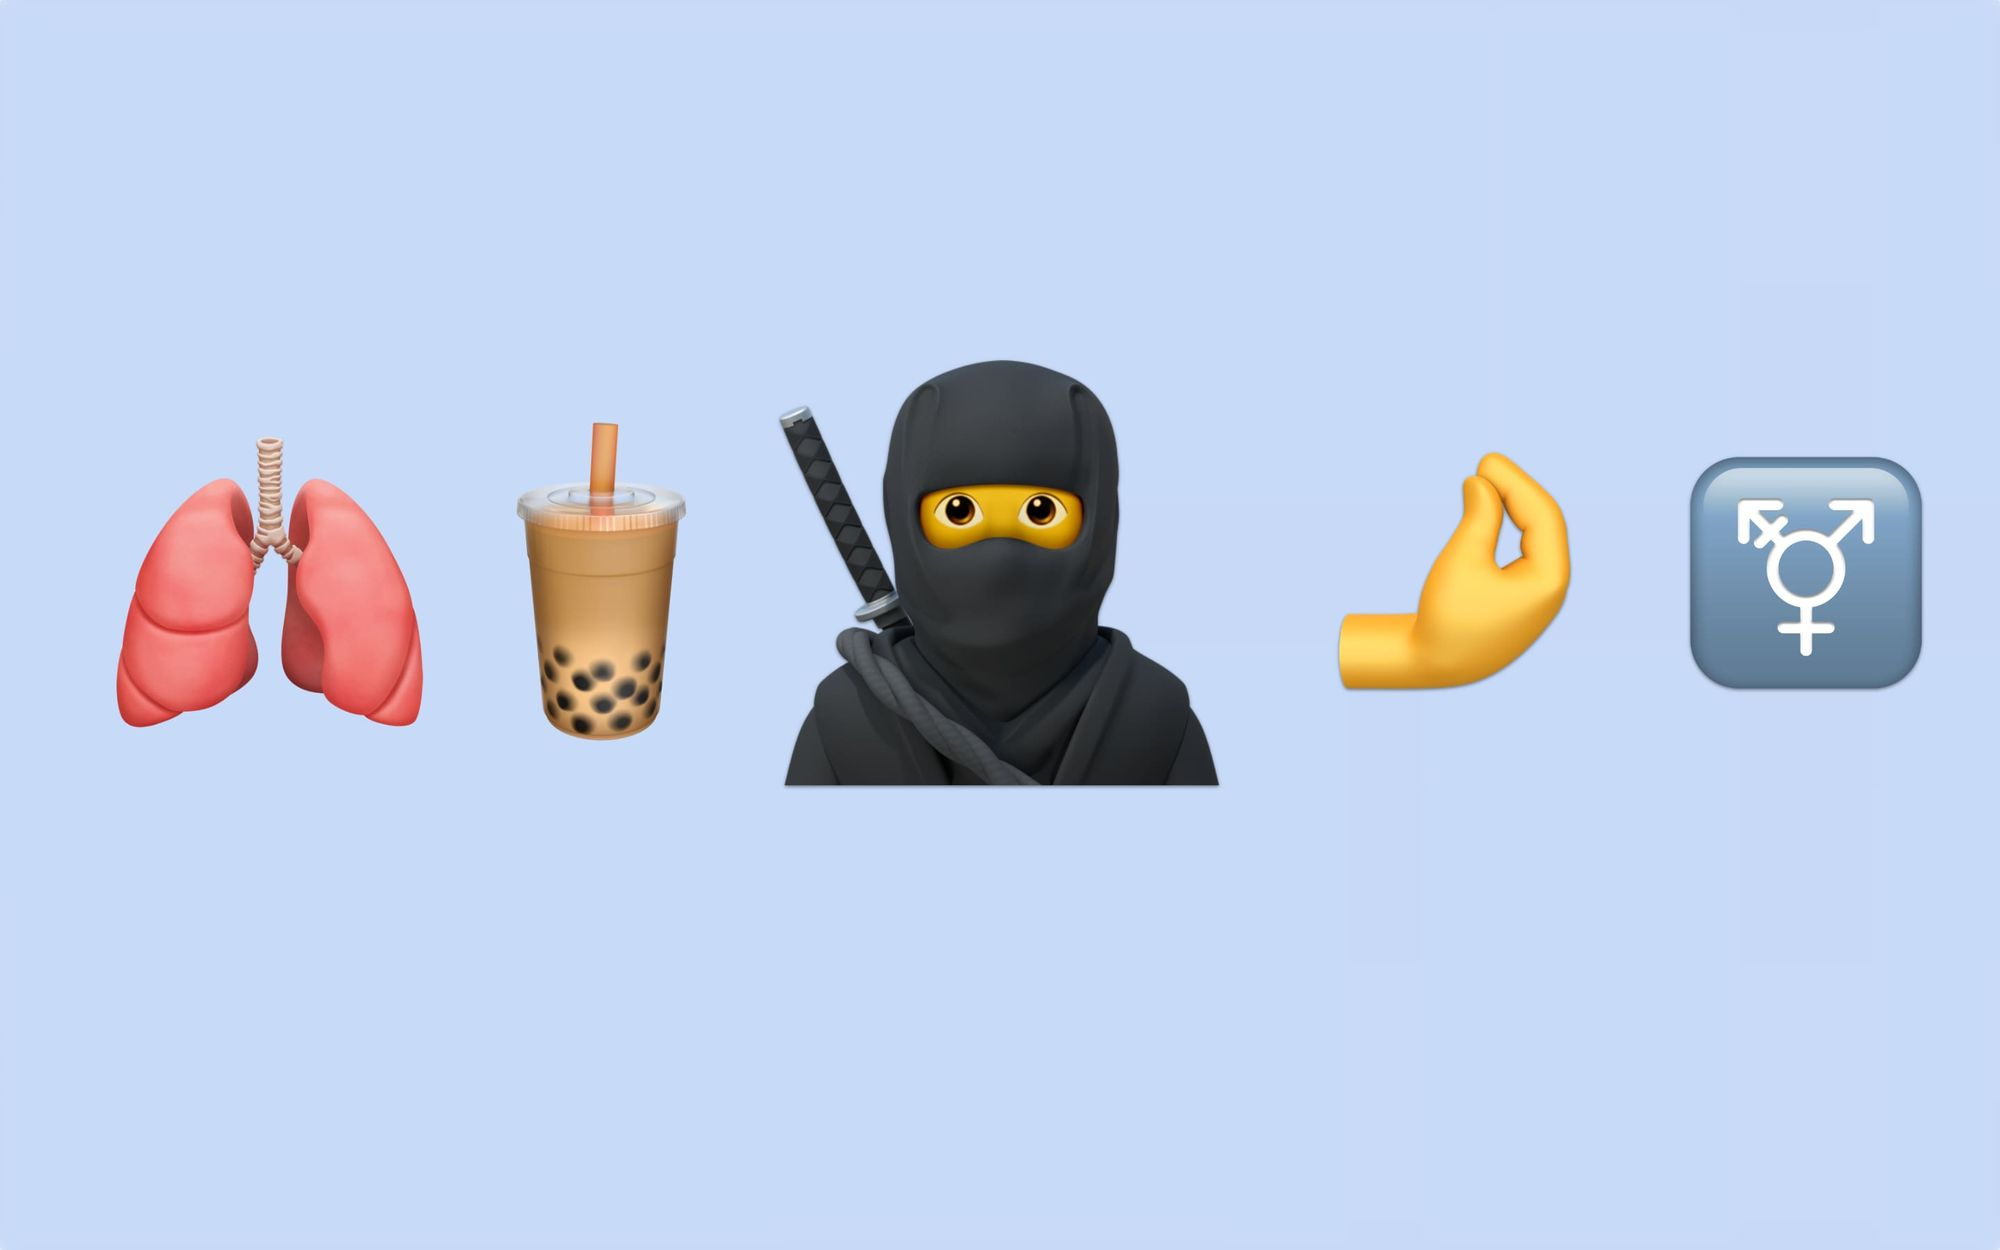 First Look: New Emojis Coming to iOS in 2020